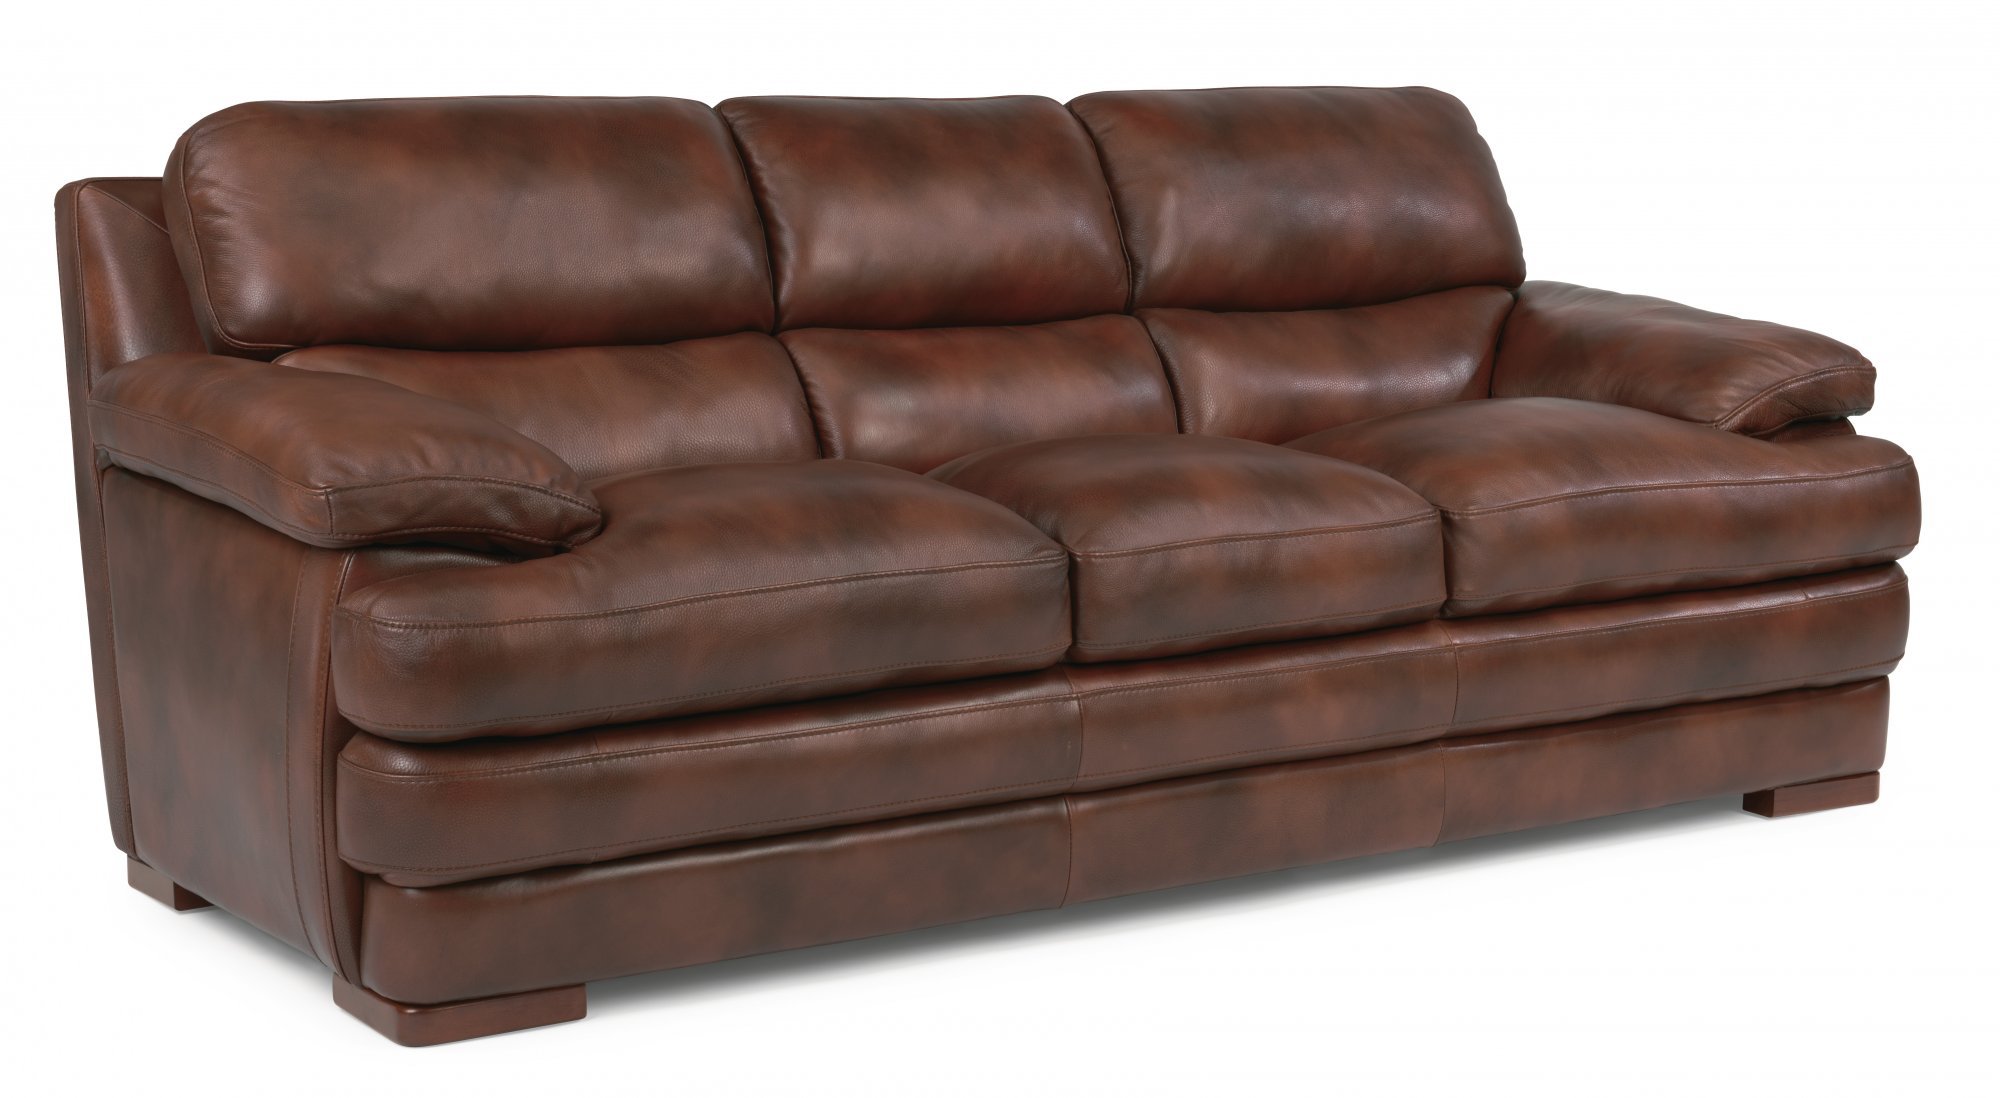 Superb Flexsteel 1127 60 Dylan Leather Reclining Loveseat Squirreltailoven Fun Painted Chair Ideas Images Squirreltailovenorg